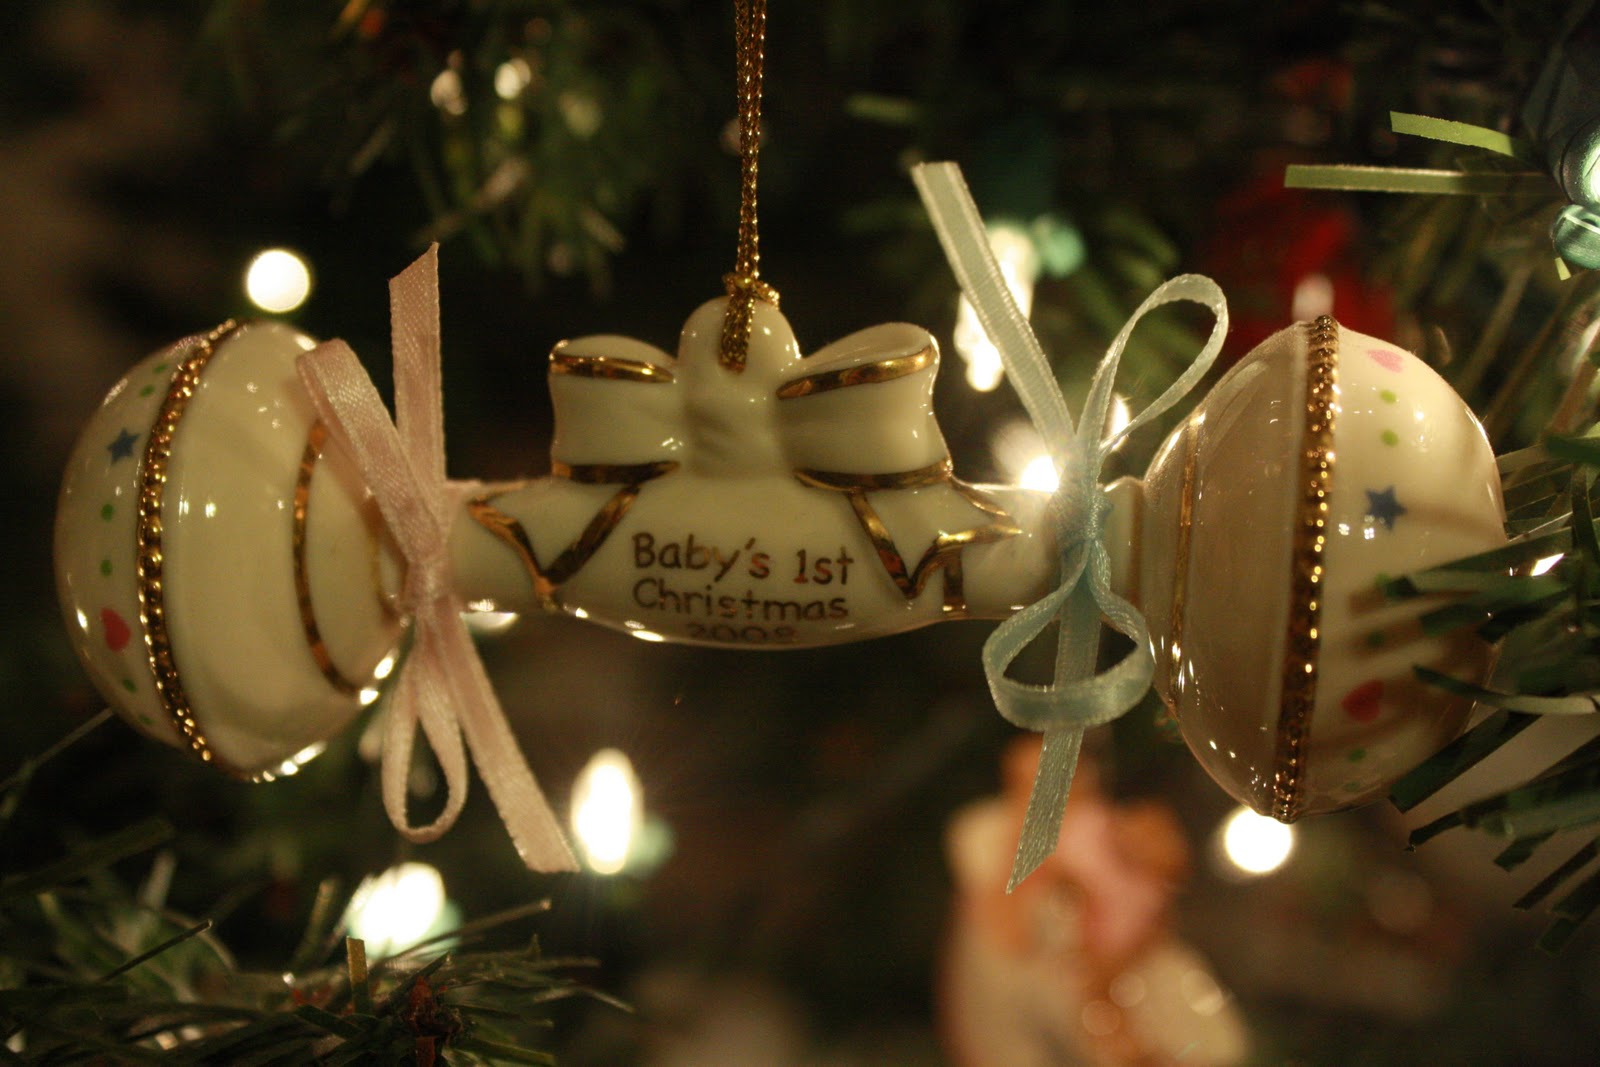 First married christmas ornament - Sophie S First Christmas Ornament She Loves Looking At It And Hearing The Story Of Her Birth It S Adorable To Watch Her Try To Remember When She Was A